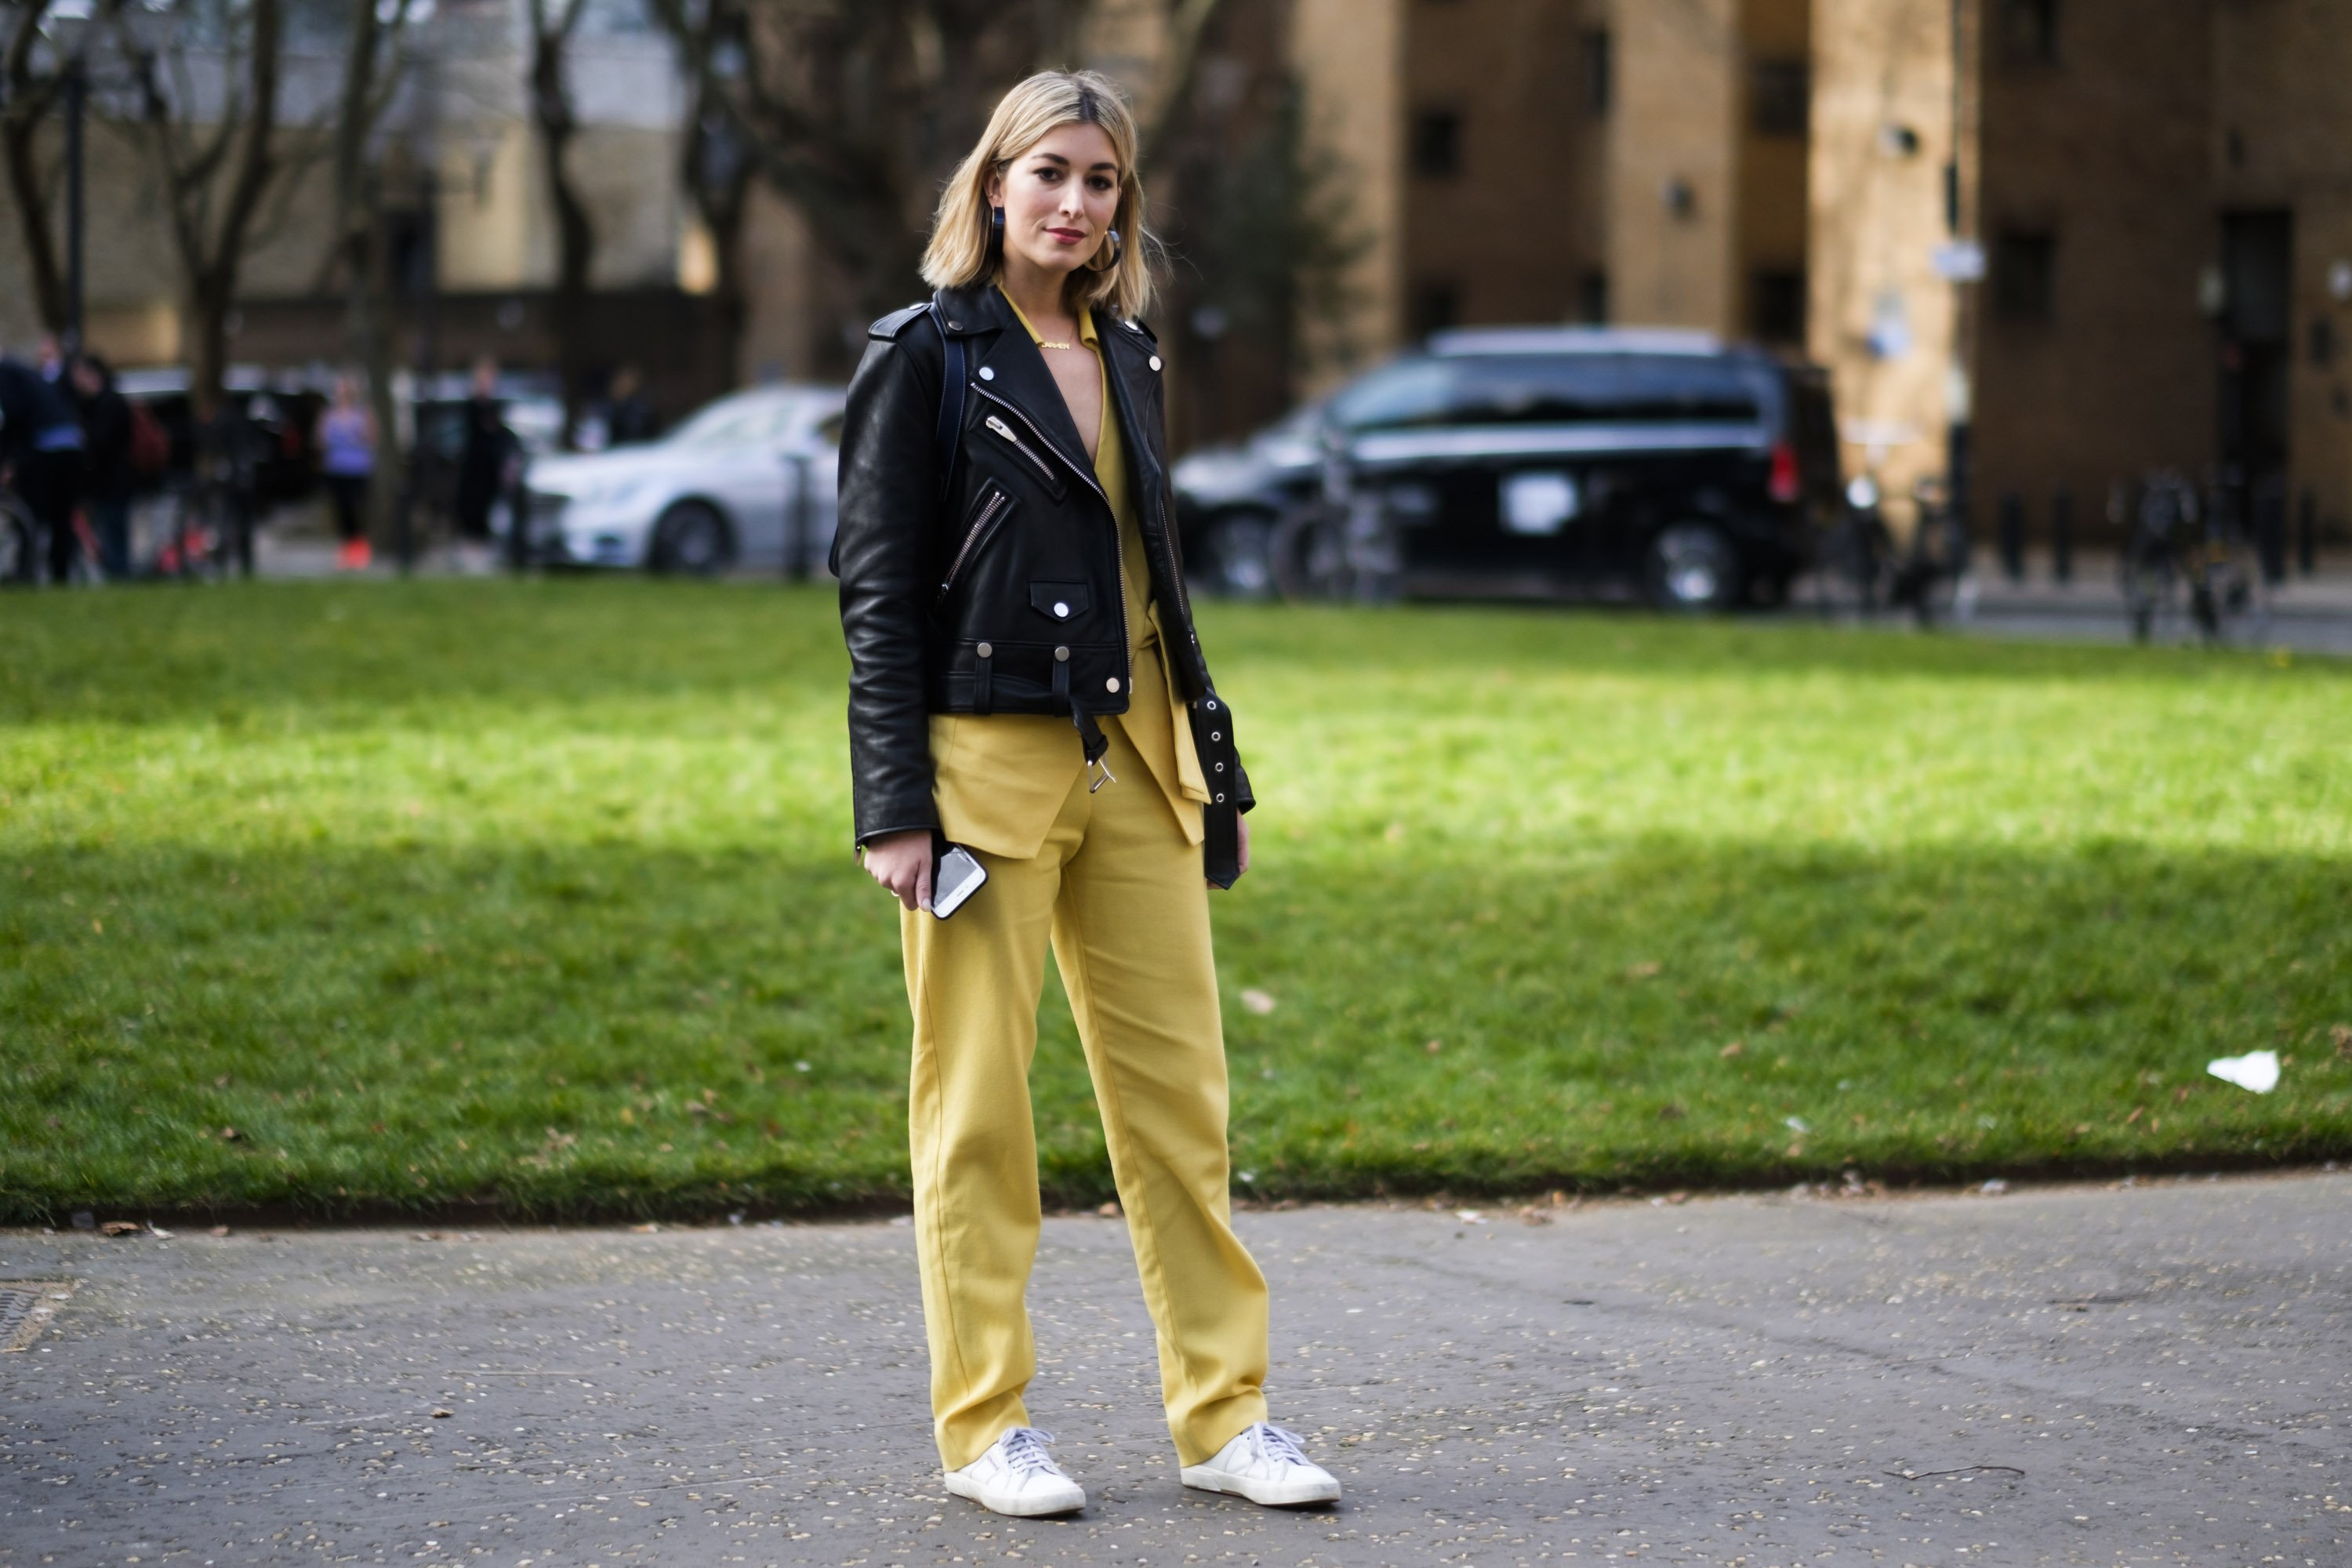 3db92c7e4e6ae 16 Street Style Looks From Around The World To Try When You re Looking For  Some Fashion Inspiration